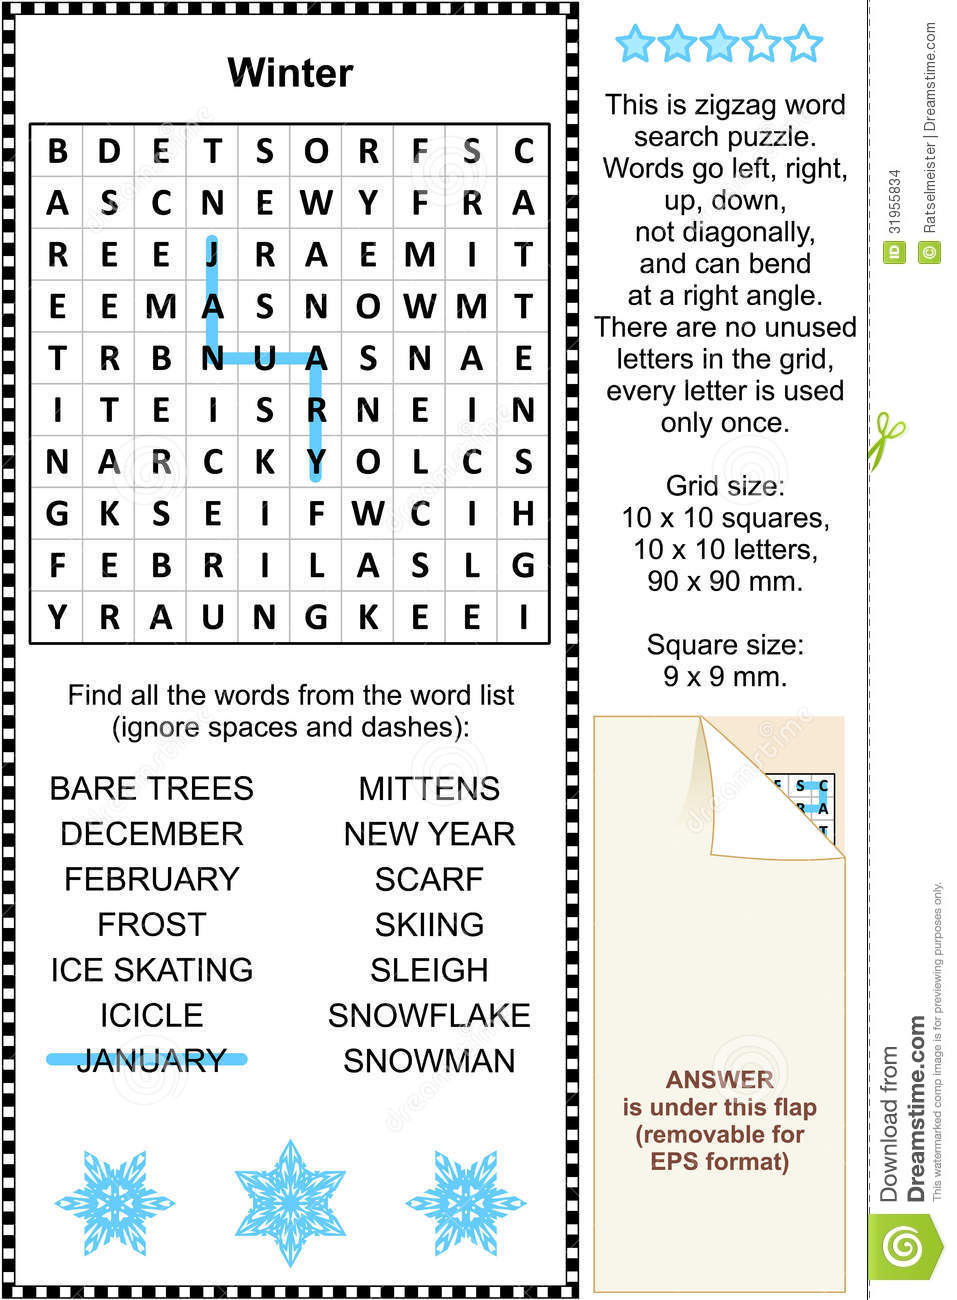 Winter Themed Wordsearch Puzzle Stock Images - Image: 31955834